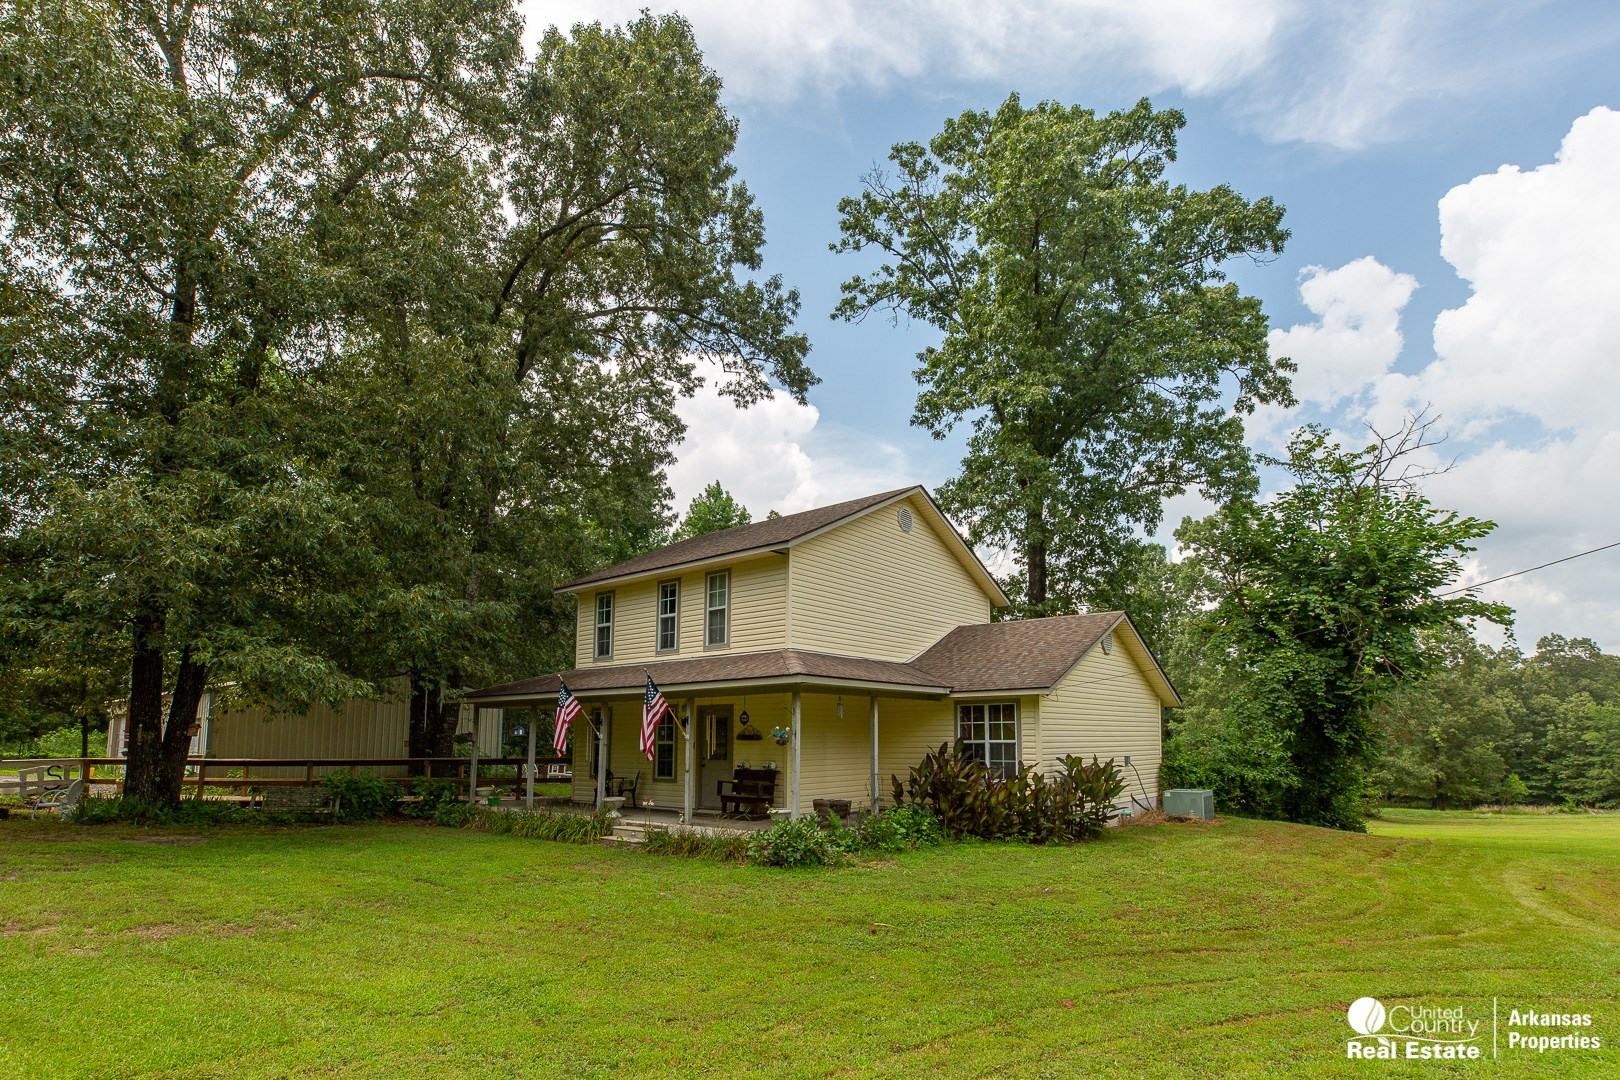 Charming 2 story country home near Mena